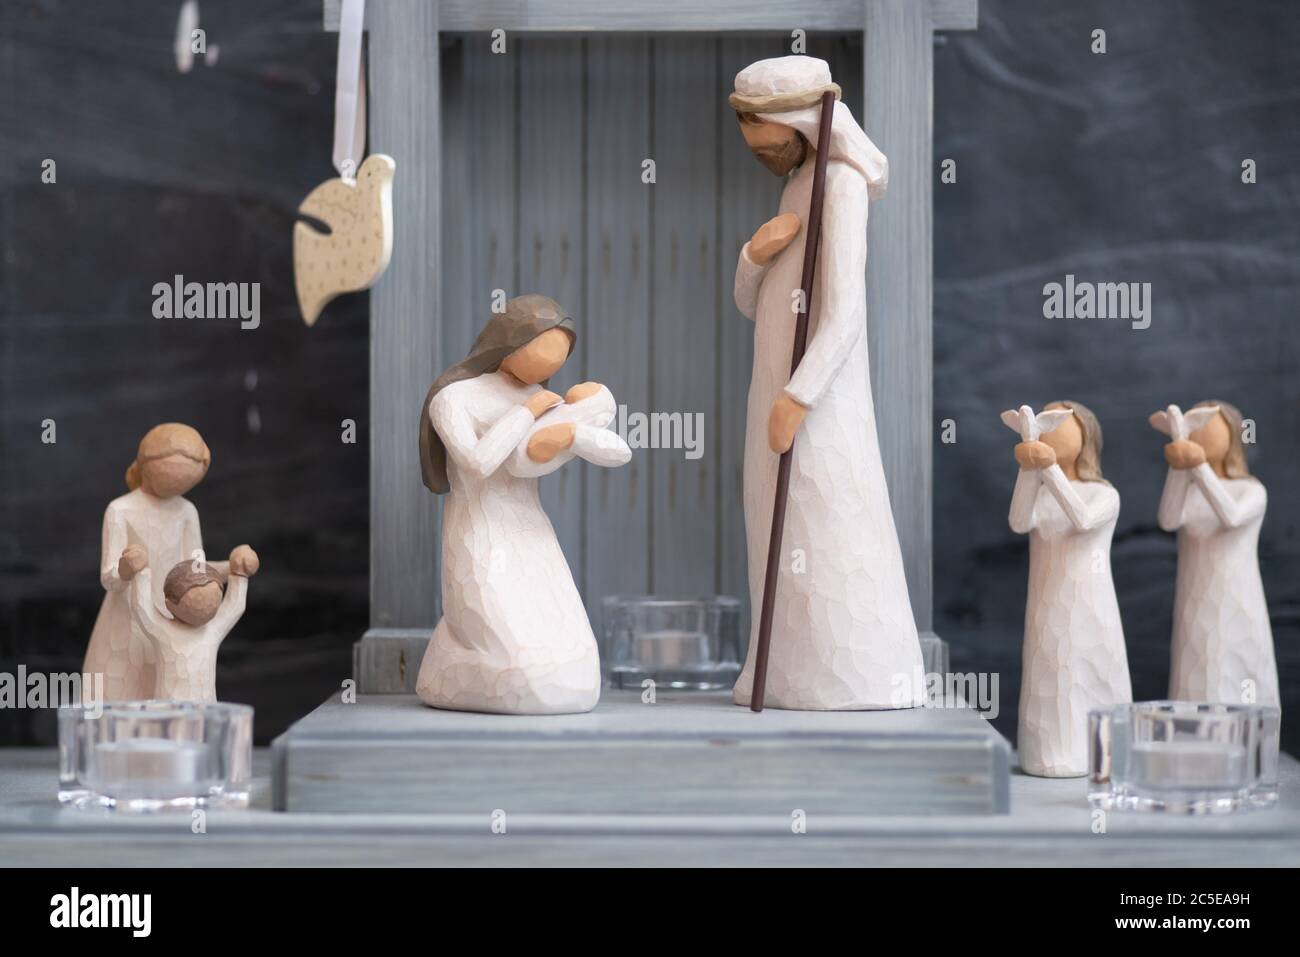 Wooden figurines depict a Christmas nativity scene in a simple wooden stable. Stock Photo